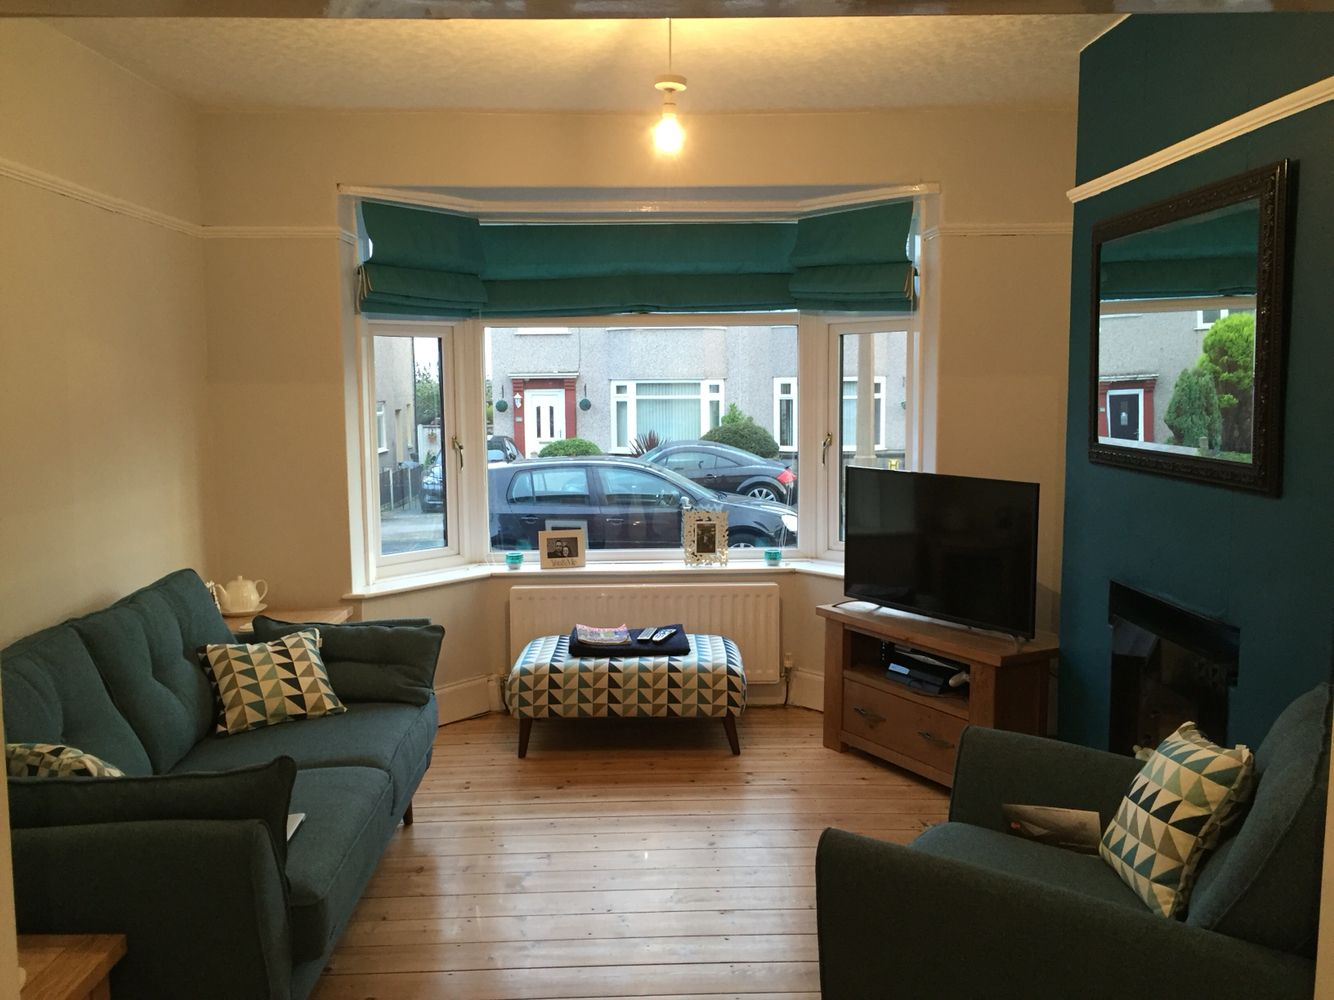 Dfs Zinc Sofas Teal And Pale Grey Living Room After The